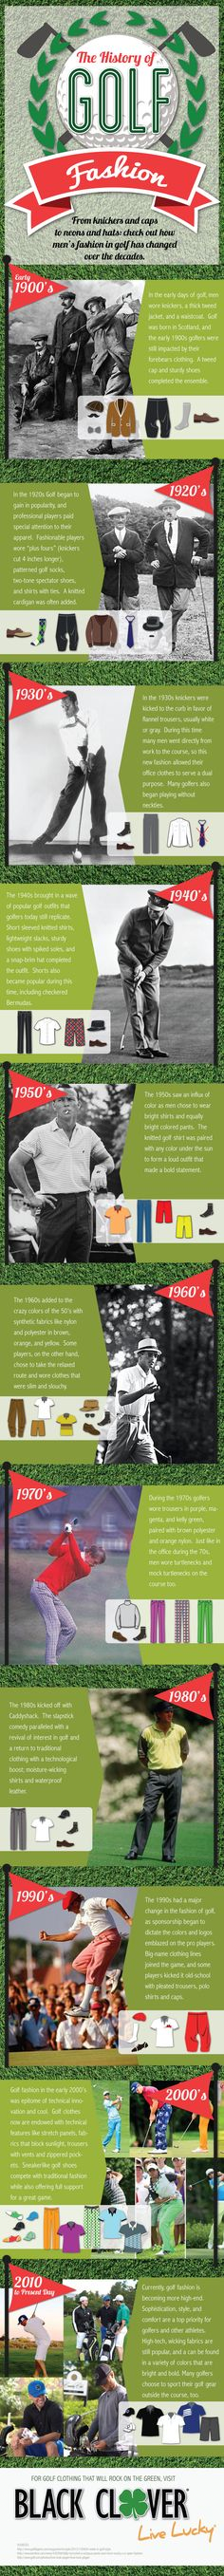 INFOGRAPHIC: History of Golf Fashion